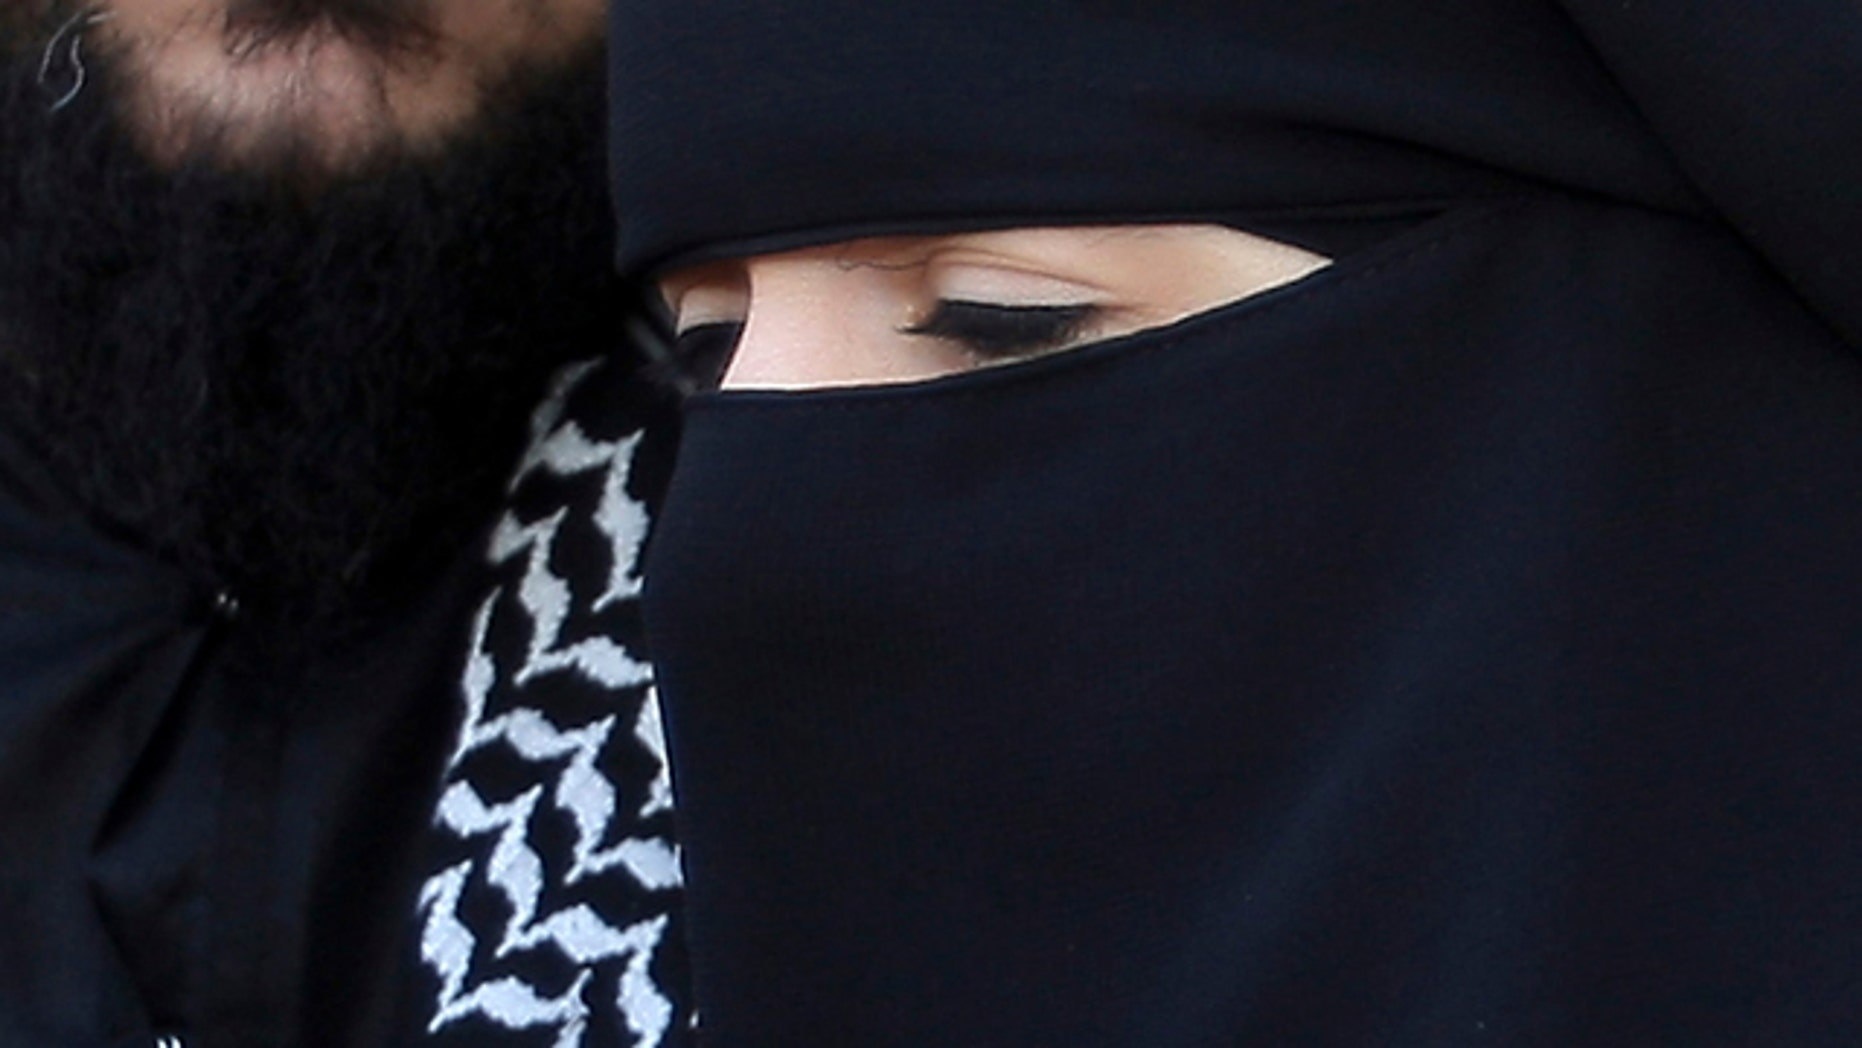 April 23, 2010: Lies Hebbadj, left, and his wife Sandrine Mouleres , speak to reporters in Nantes, western France. A French court on Dec. 12 annulled a fine given to a woman driver wearing an Islamic face veil before France's nationwide ban on the garments goes into effect. Traffic police in the western city of Nantes had fined 31-year-old Sandrine Mouleres in April, saying she did not have a clear field of vision. The fine was just $29, but drew widespread attention amid nationwide debate over the place of Islamic veils in today's France. (AP)